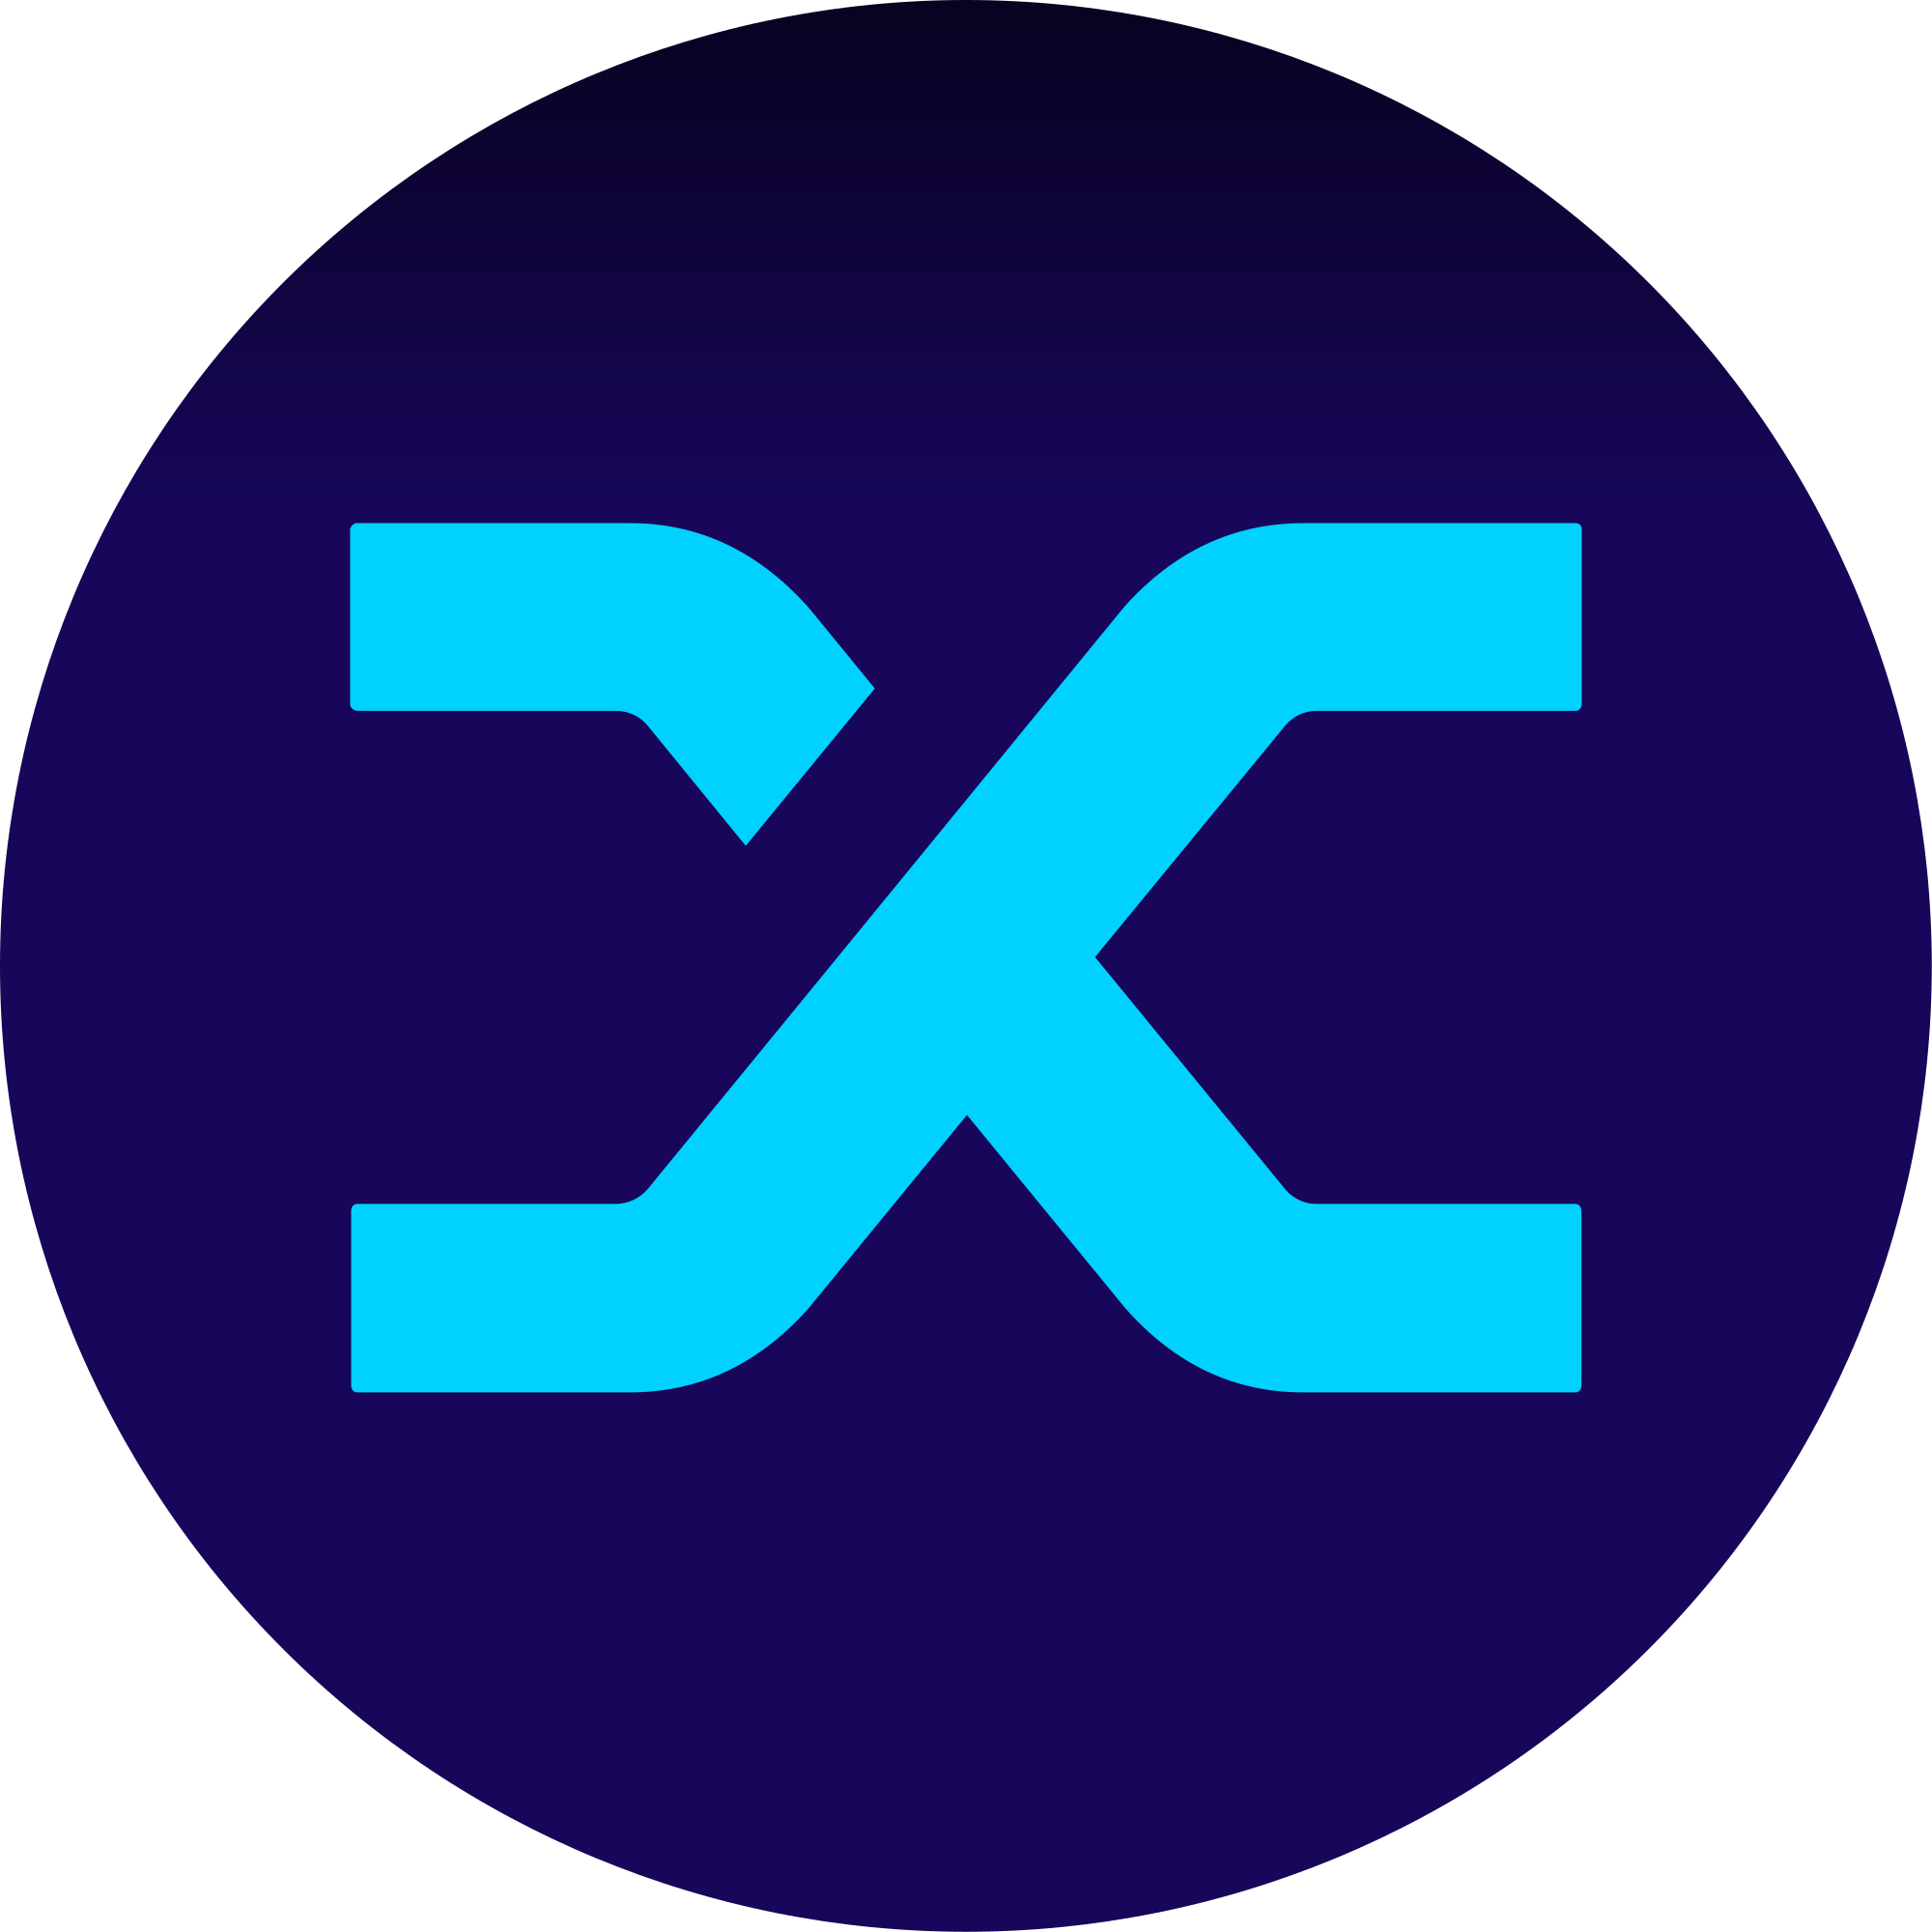 Synthetix (SNX) Logo .SVG and .PNG Files Download